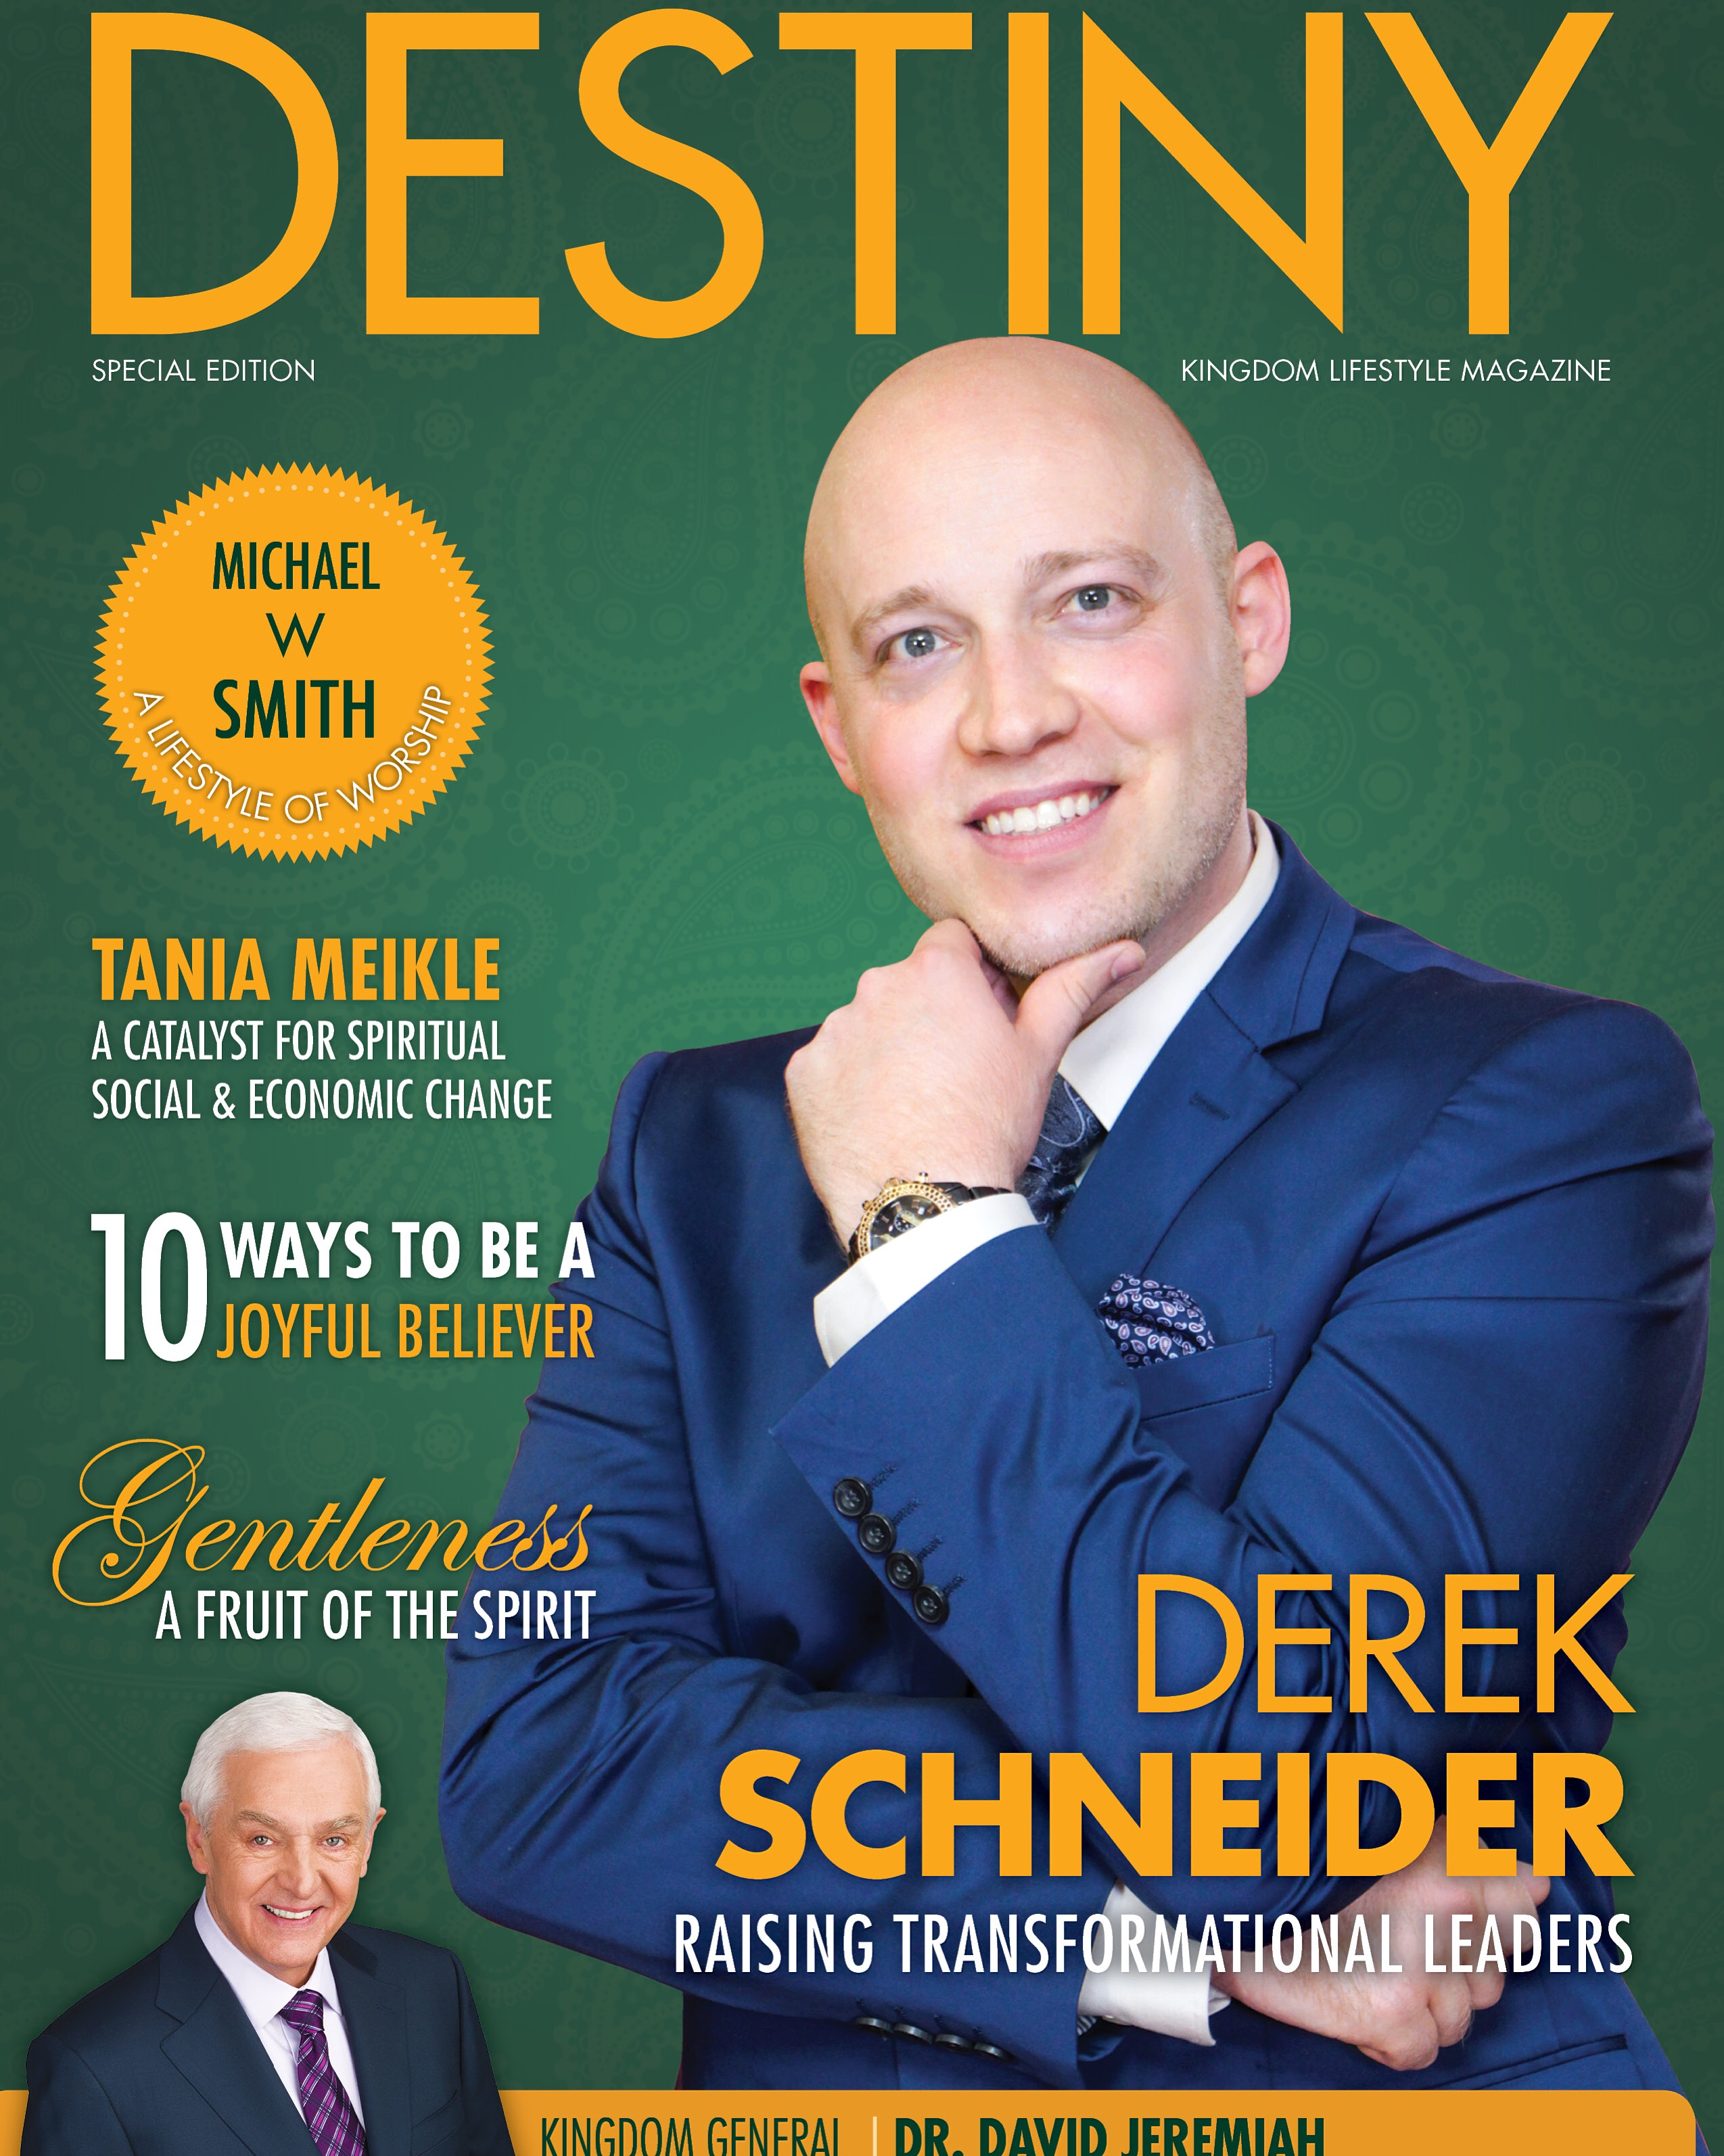 Pastor Derek Schneider: Cover story in a Special Edition of Destiny magazine!